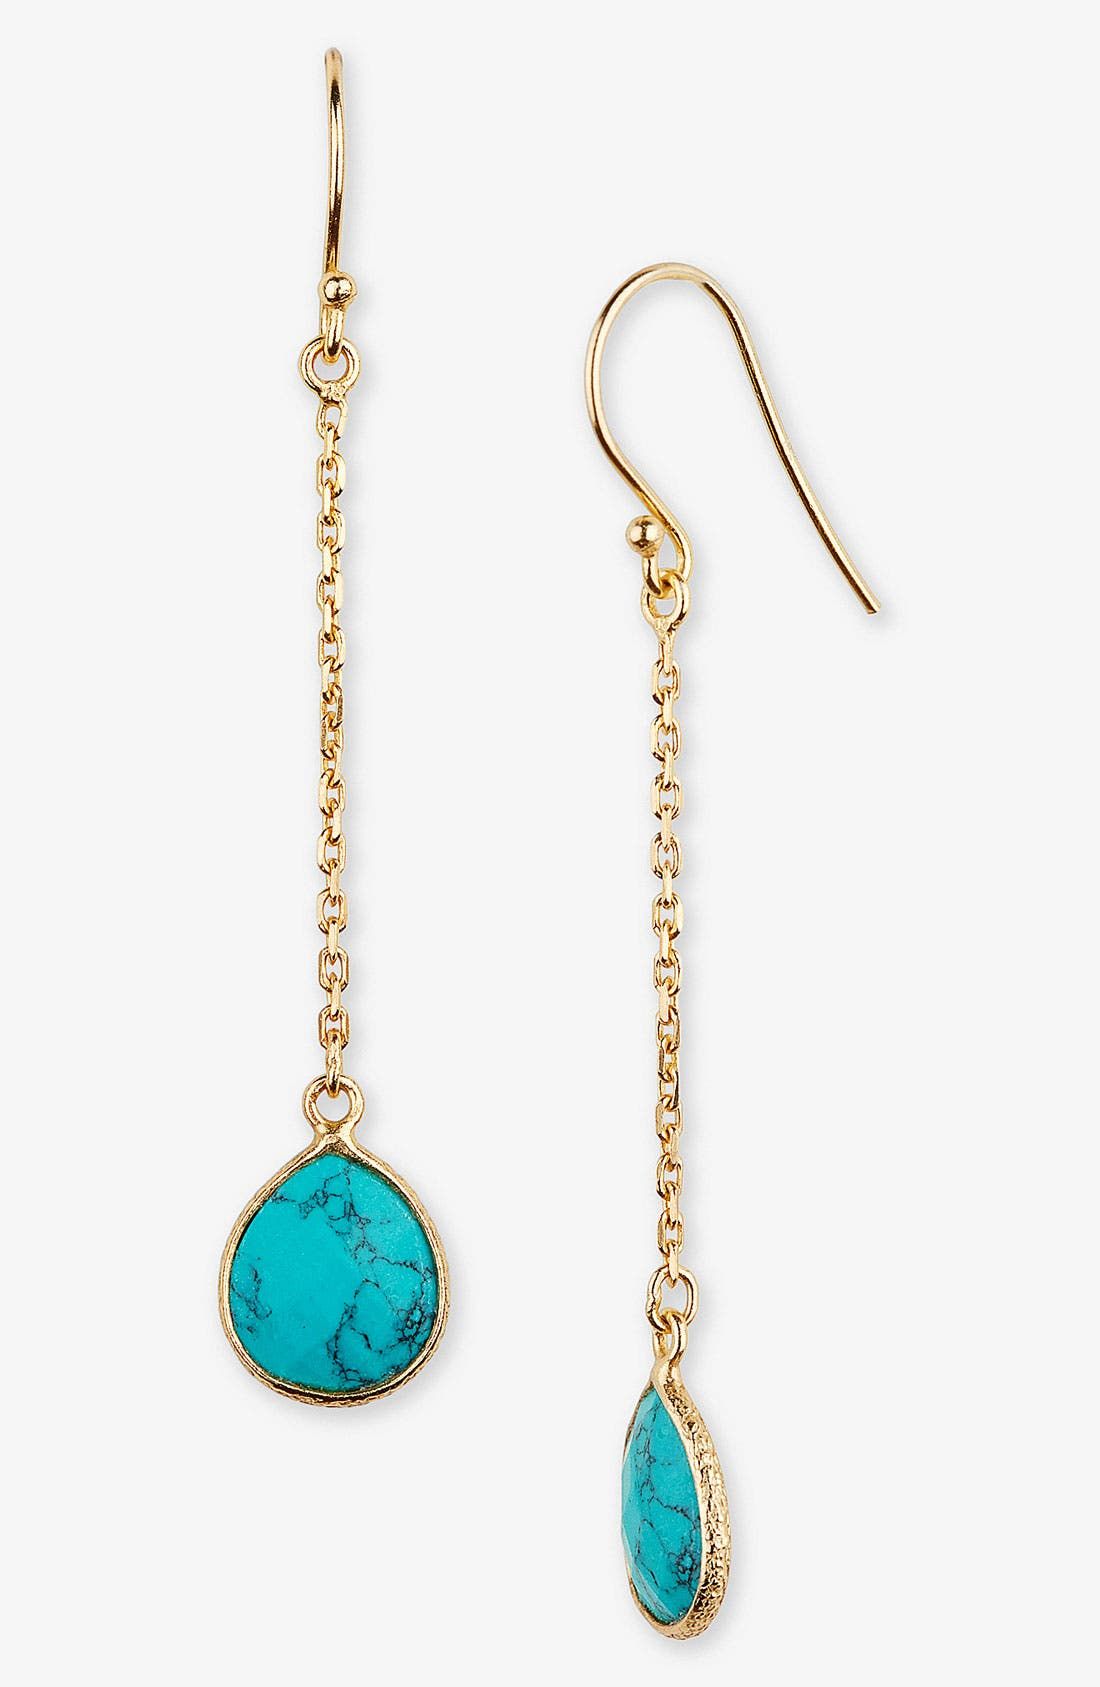 Alternate Image 1 Selected - Argento Vivo 'Bauble Bar' Linear Earrings (Nordstrom Exclusive)